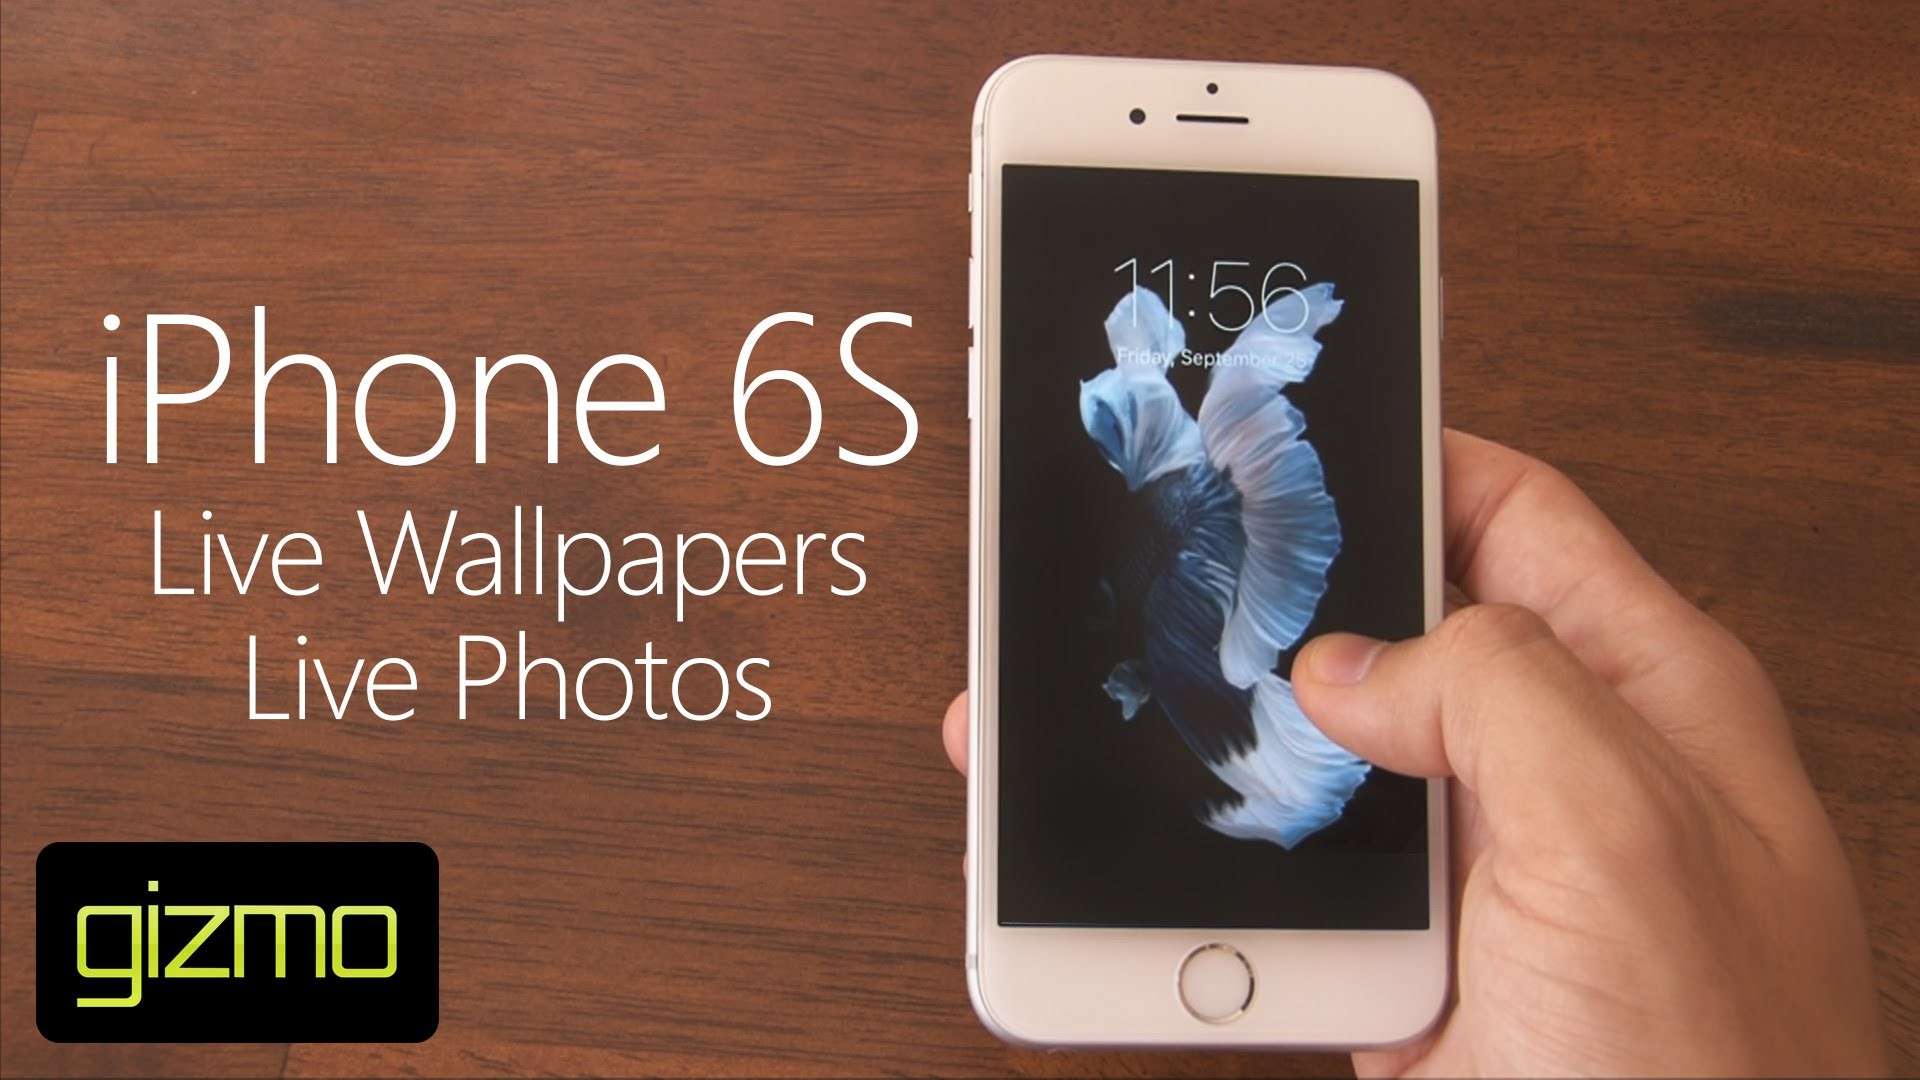 Iphone 6s plus wallpaper live download